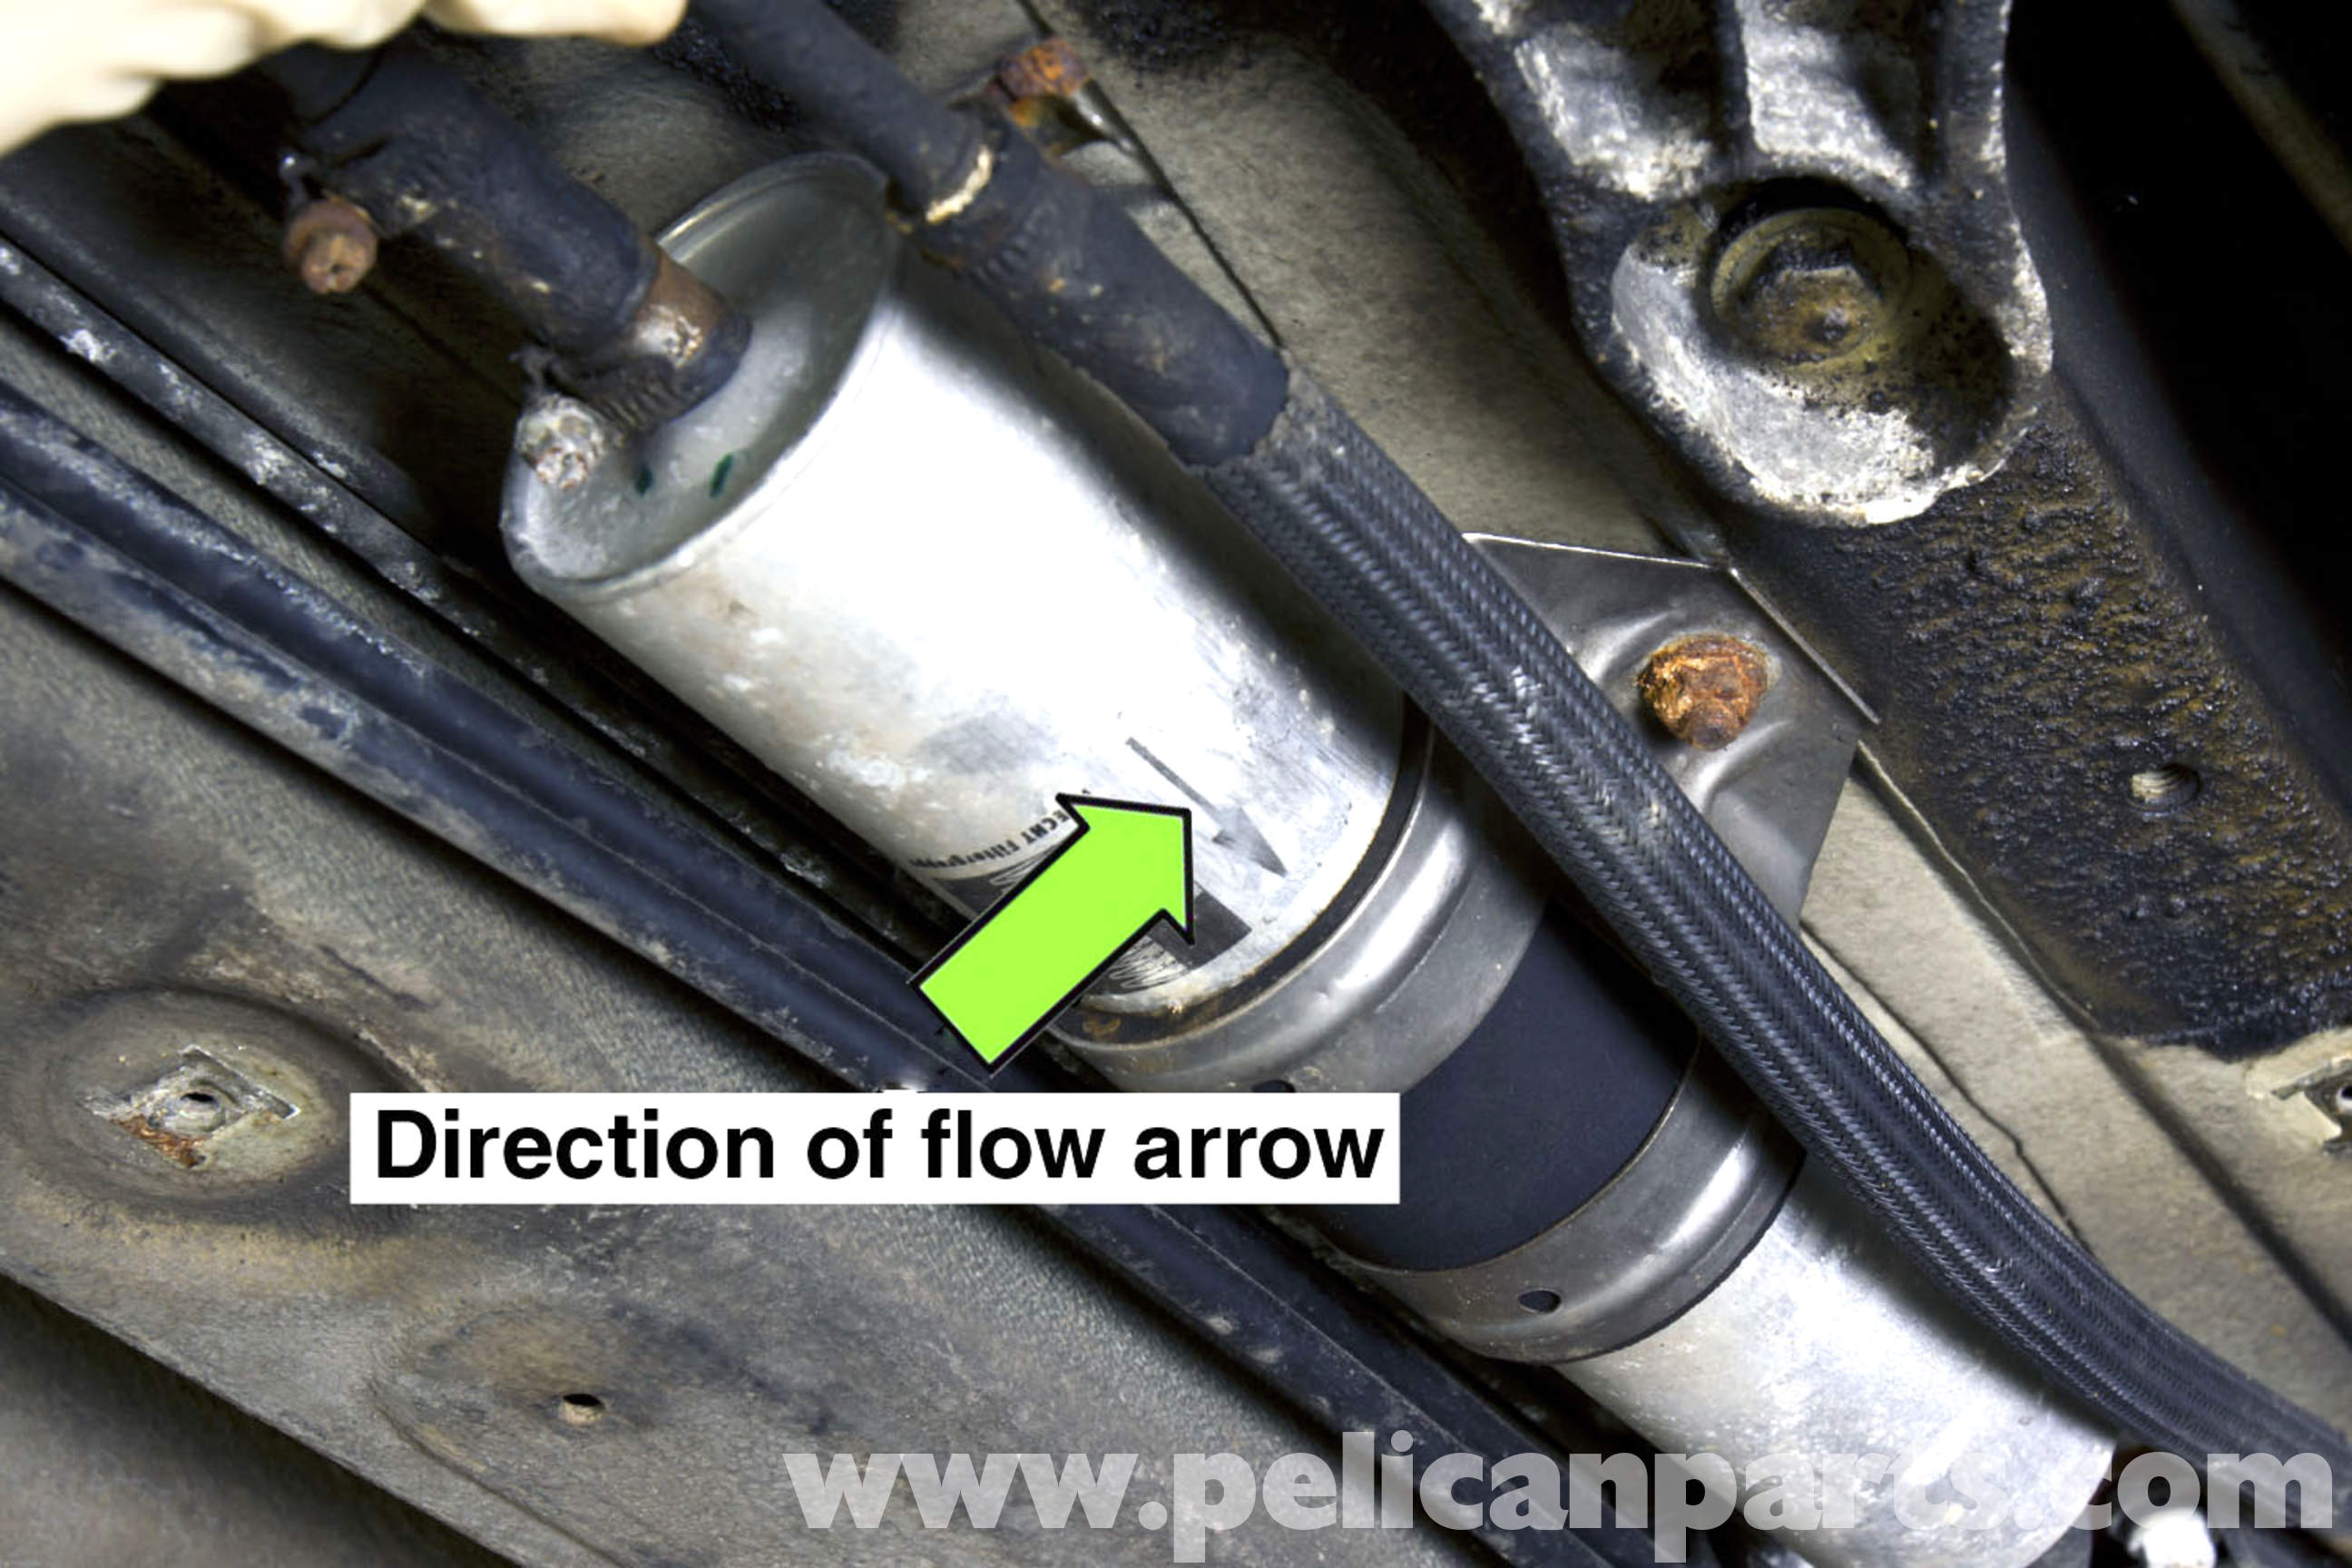 Bmw Z3 Fuel Filter Replacement 1996 2002 Pelican Parts Diy Small Engine Installation Large Image Extra